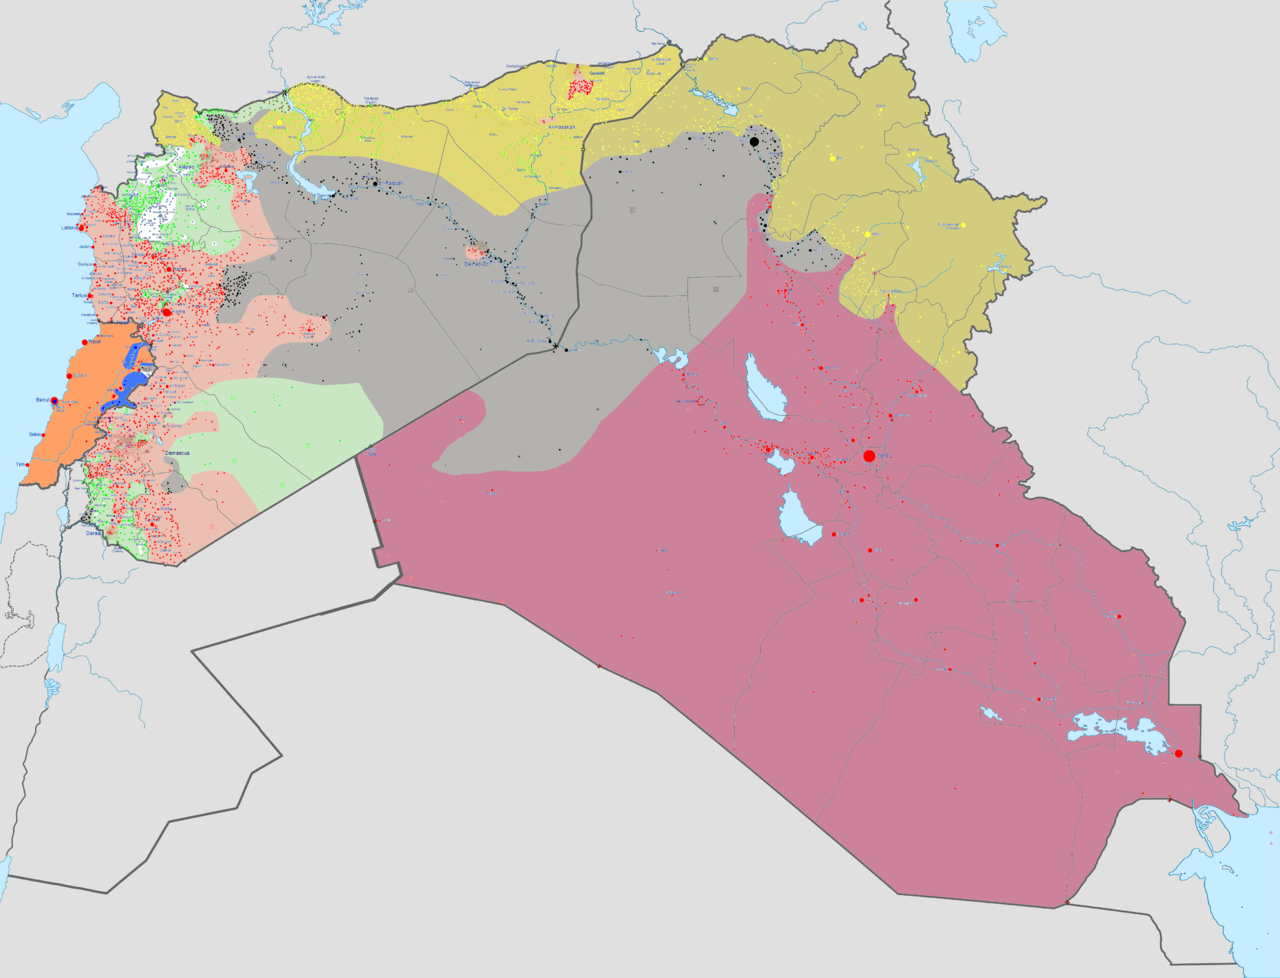 Situation in Syria and Iraq as of September 3rd 2016